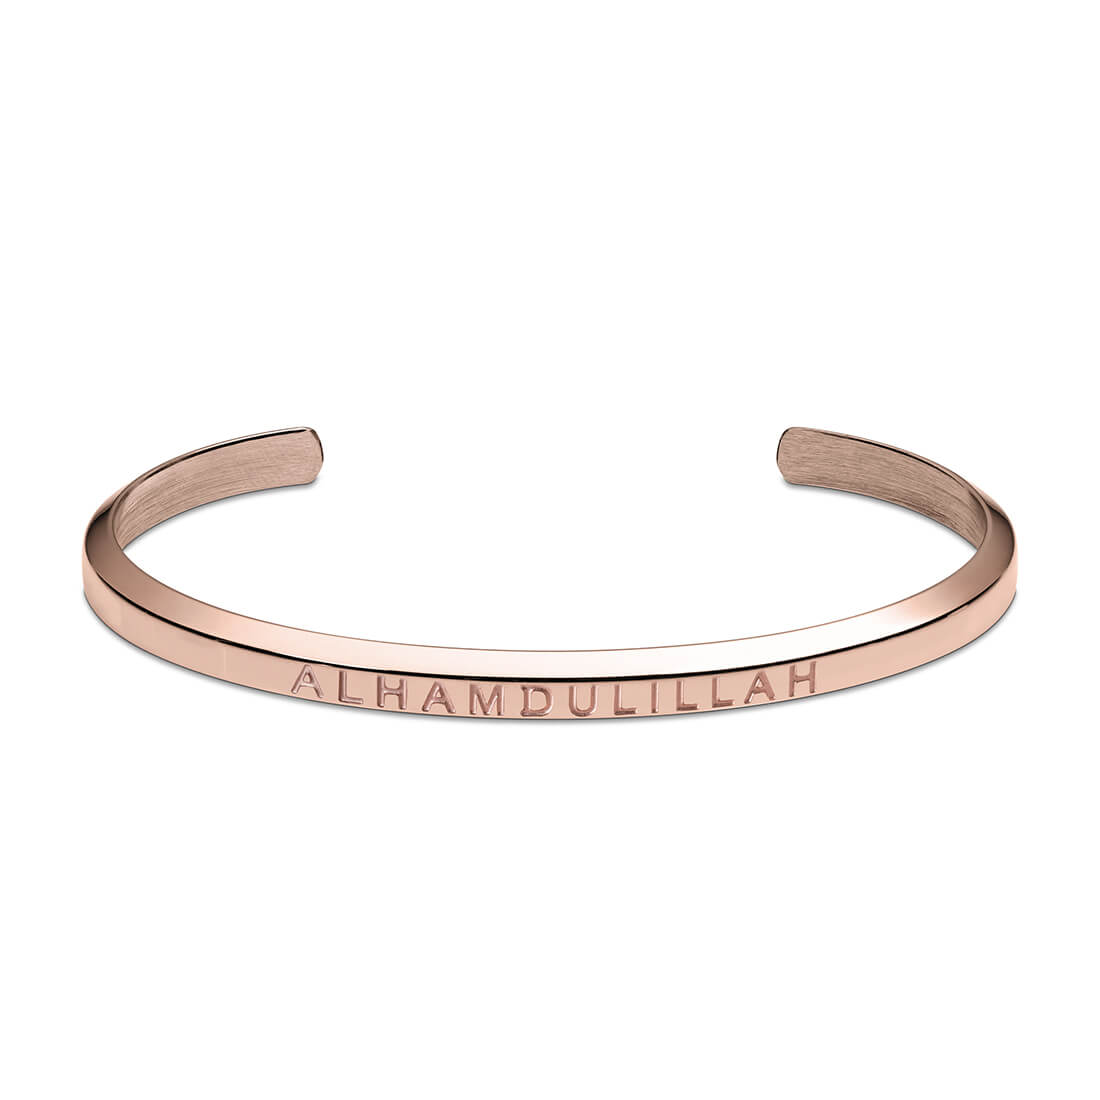 Alhamdulillah Cuff Bracelet in Rose Gold by Crscnt Moon